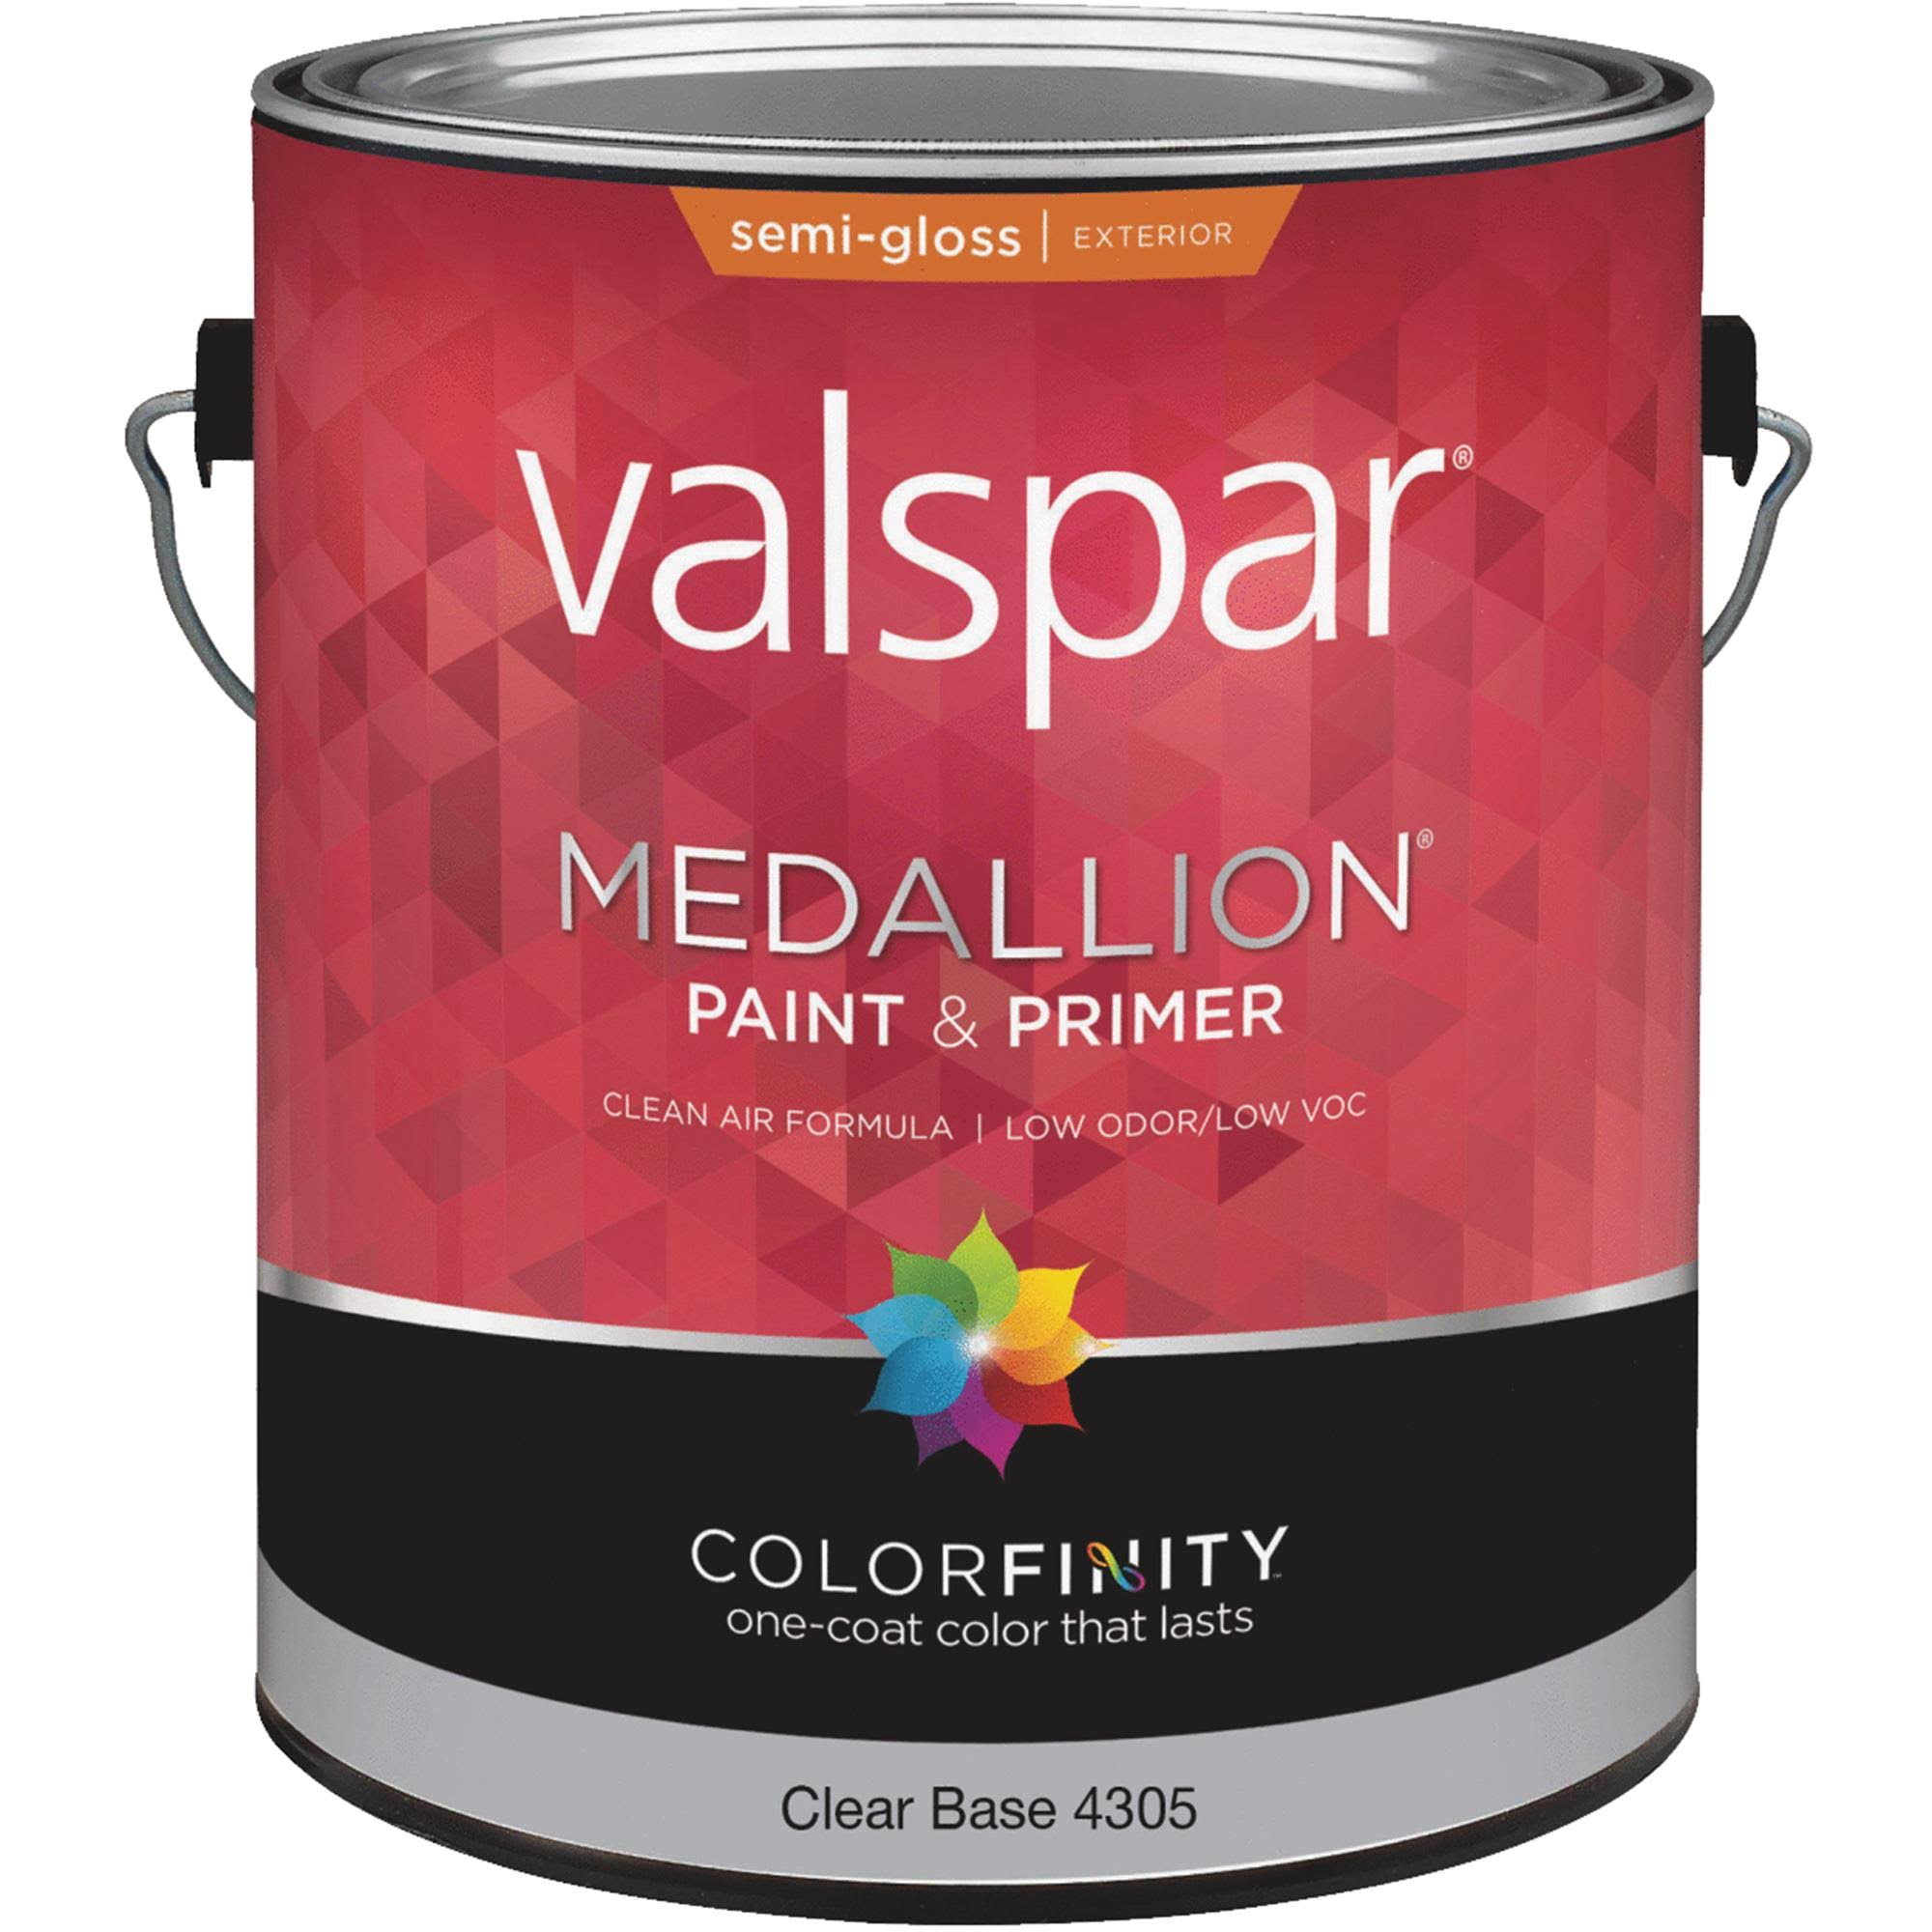 Valspar 4305 Exterior House Paint, Clear, Semi-Gloss, 1 Gal